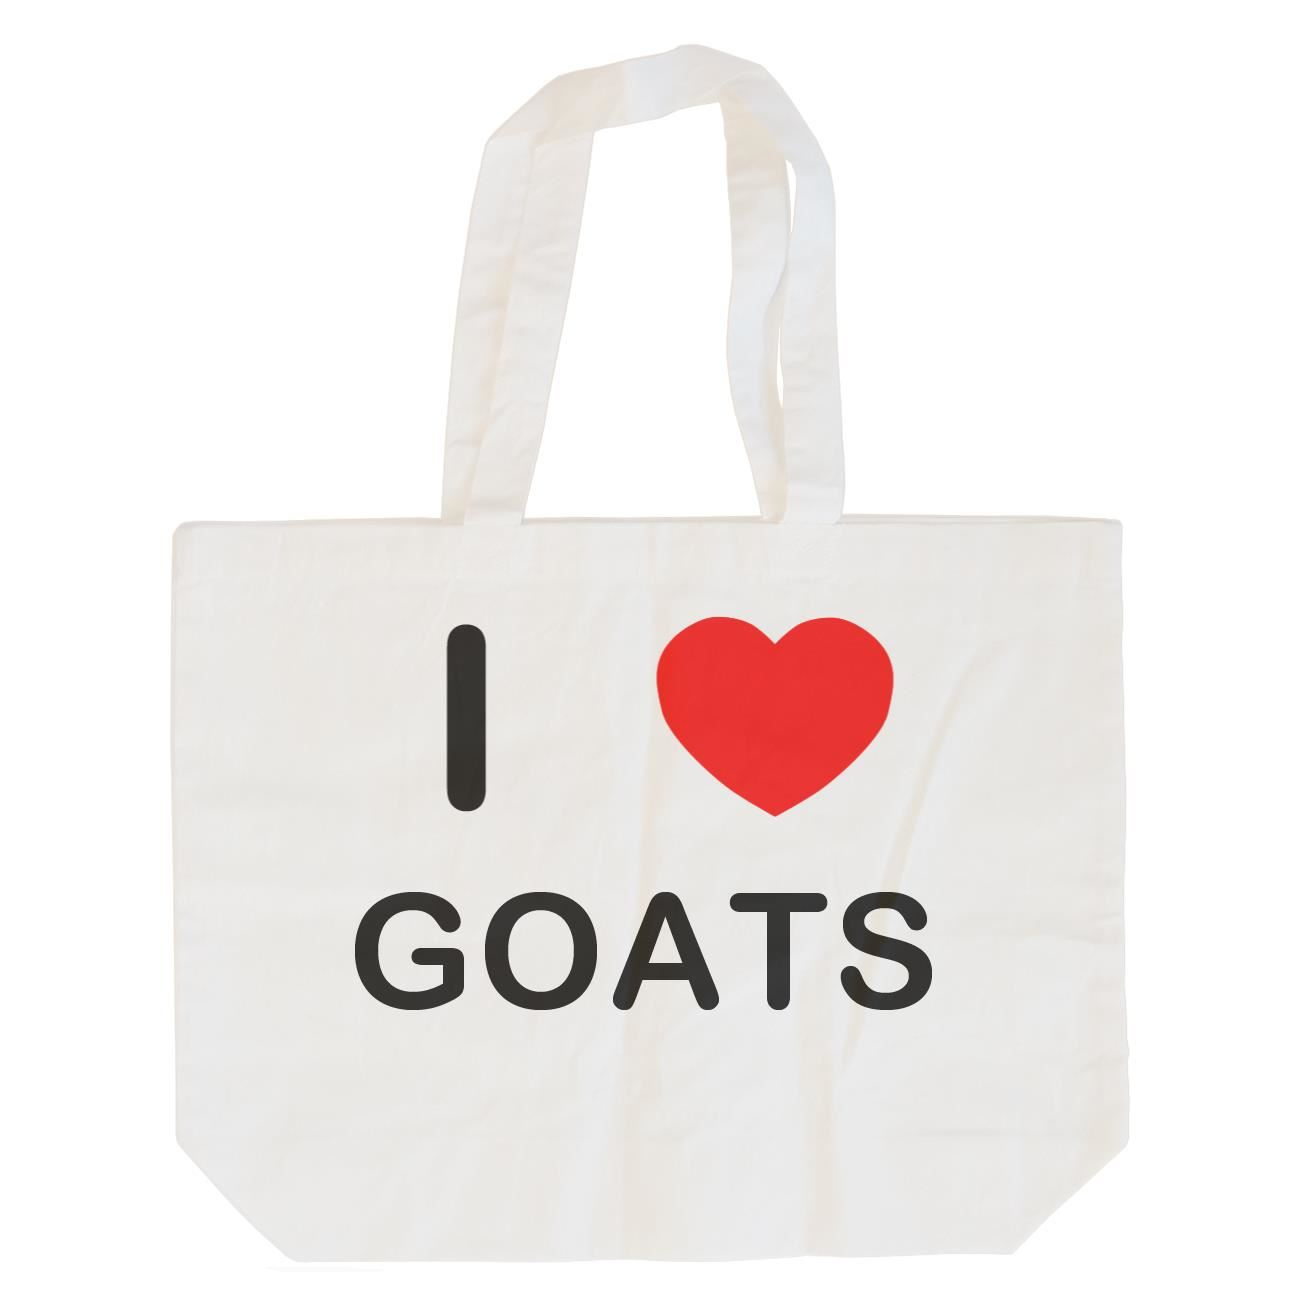 I Love Goats - Cotton Bag | Size choice Tote, Shopper or Sling